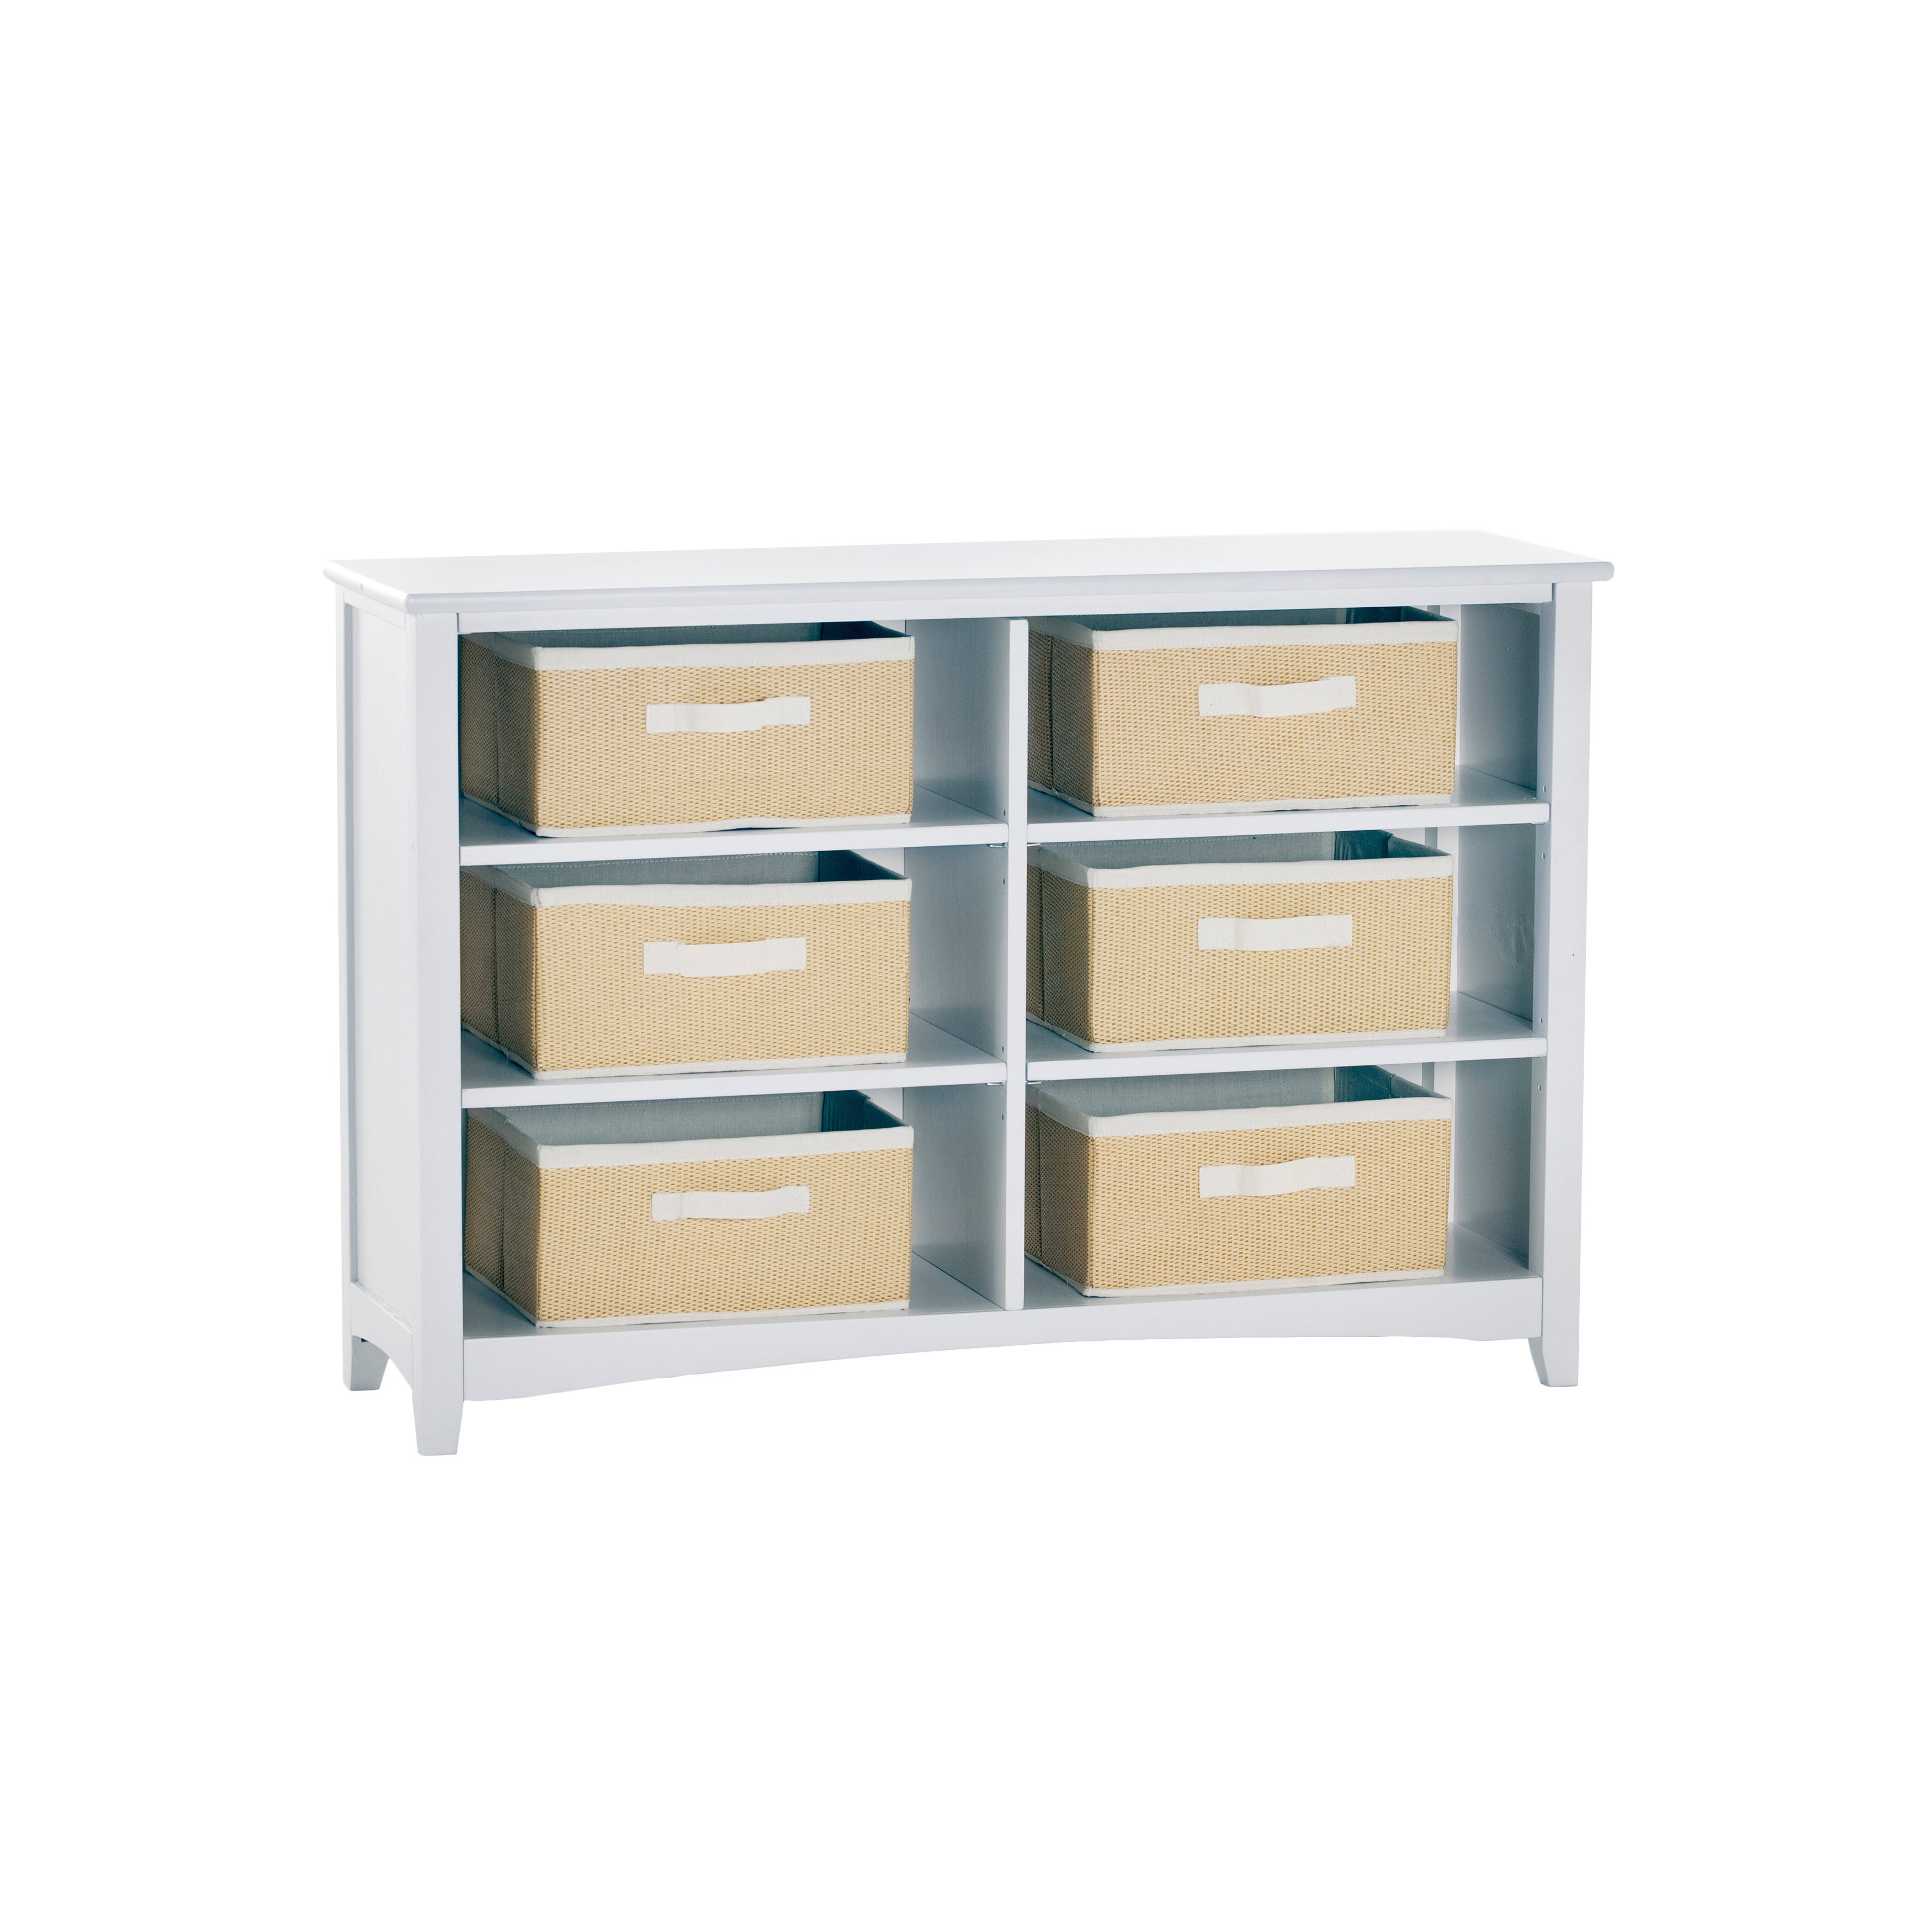 your furniture white room beautiful storage walmart horizontal full with interesting bookcases bookcase in l for of size doors bookshelves built atlanta design tall target home office glass corner